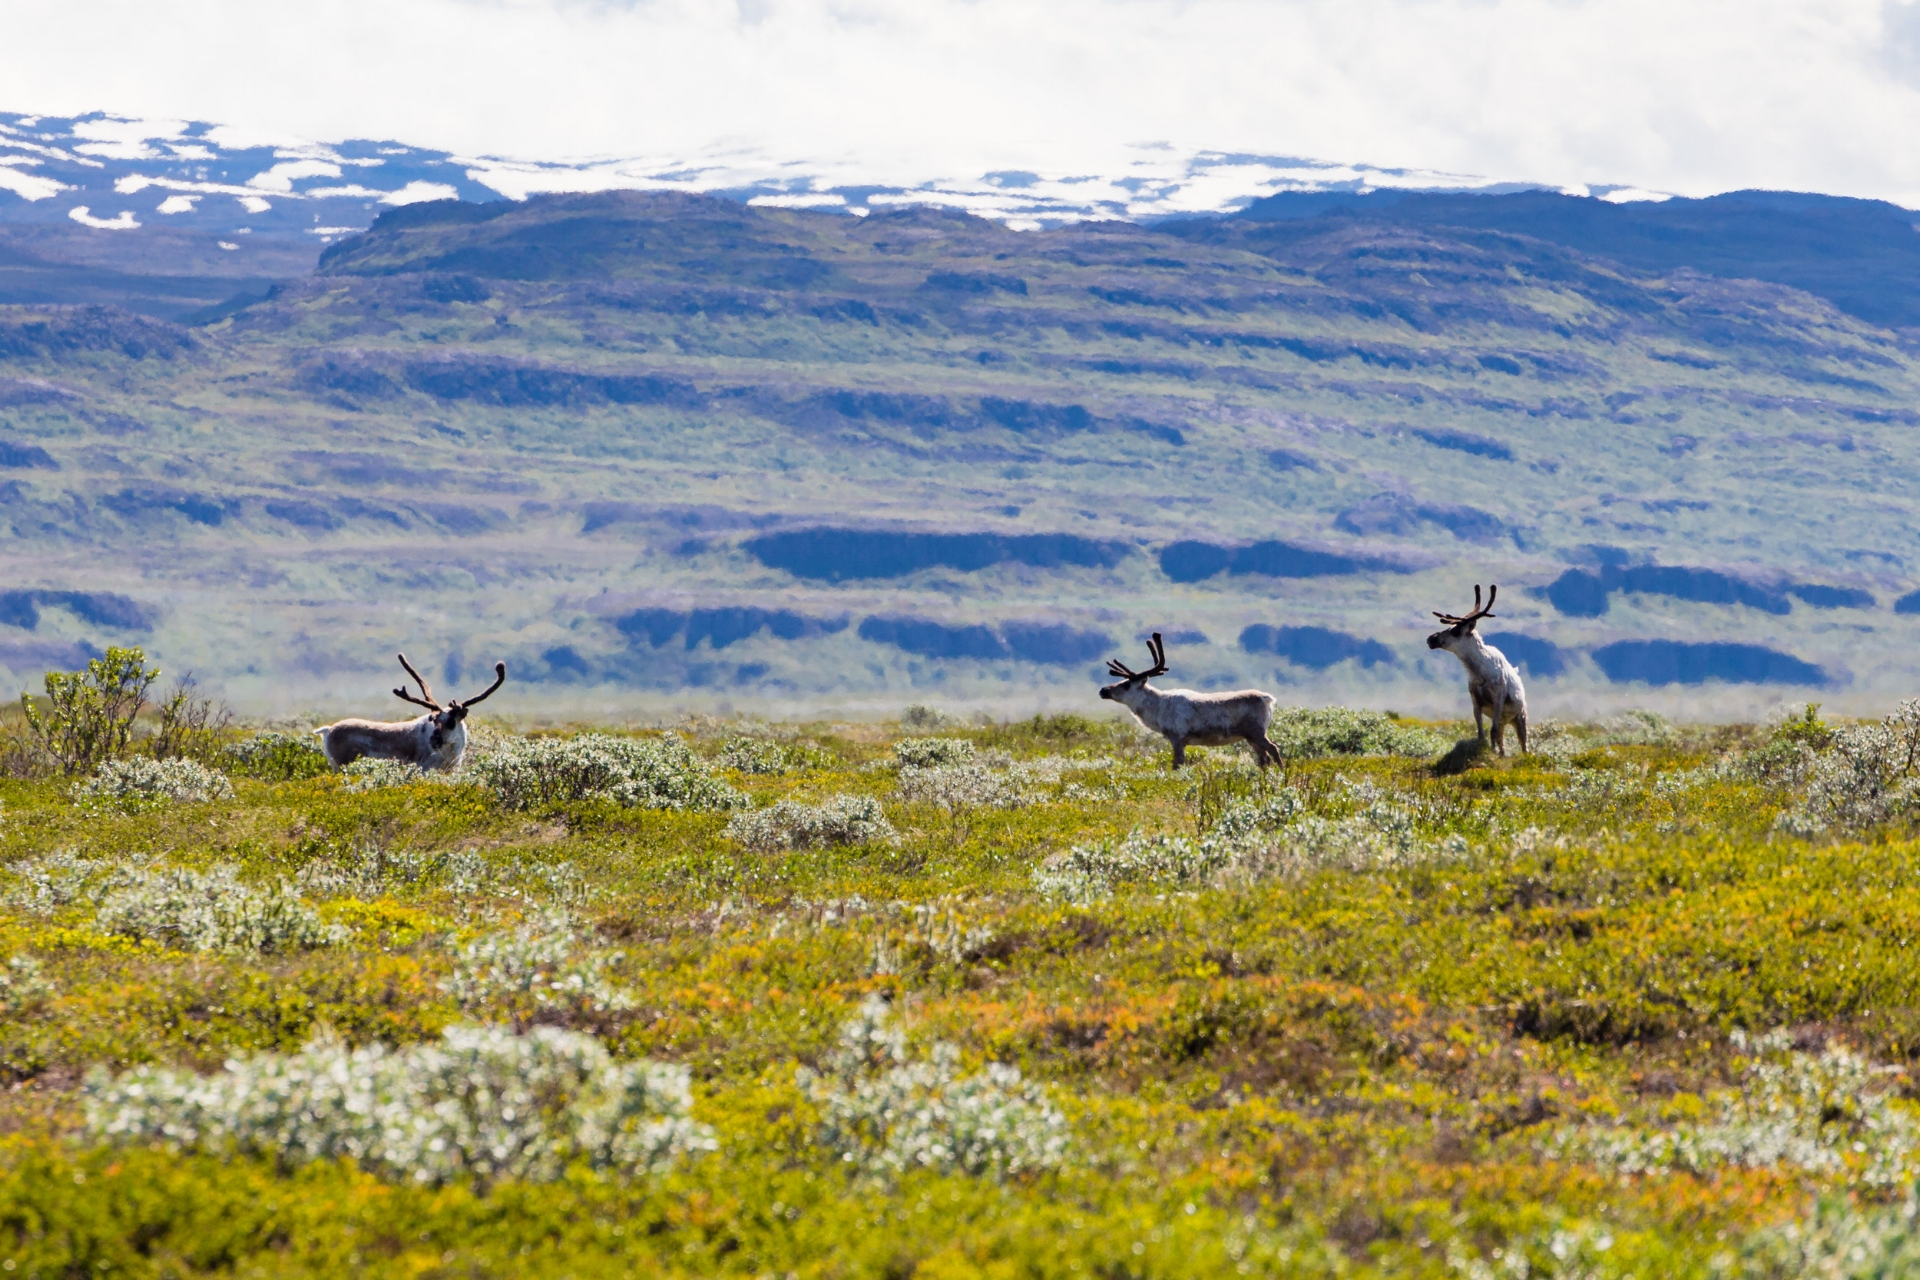 When you're travelling in East Iceland (and you're lucky), you might spot some reindeer.